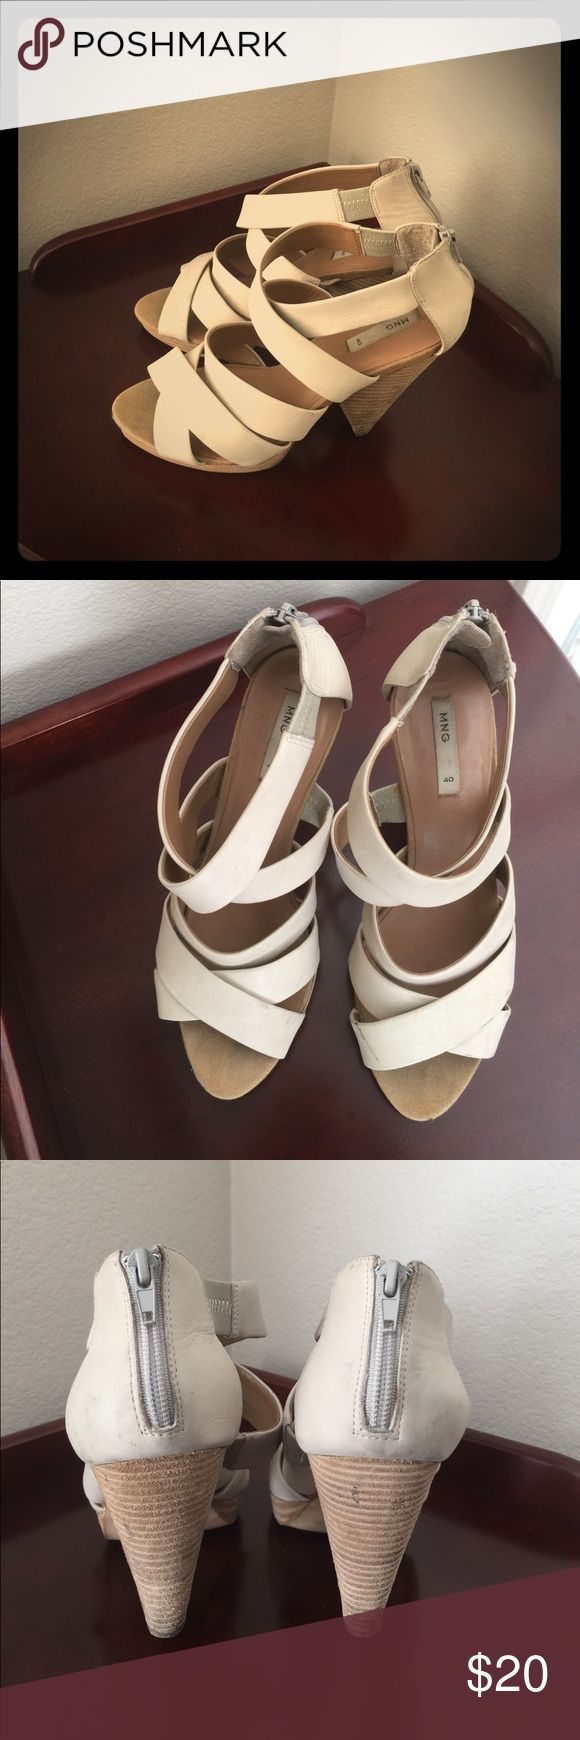 Mango beige heels Comfortable and stylish shoes that can be dressed up or down. MNG size 40(Eu)/ size 10 (US) heels. Off white straps. Can dress up or down with them. Bought at Mango store. Zipper at back of each foot. Worn and do have a few marks/ scratches/ please see pictures and ask questions! Happy to answer any questions you may have. Mango Shoes Heels